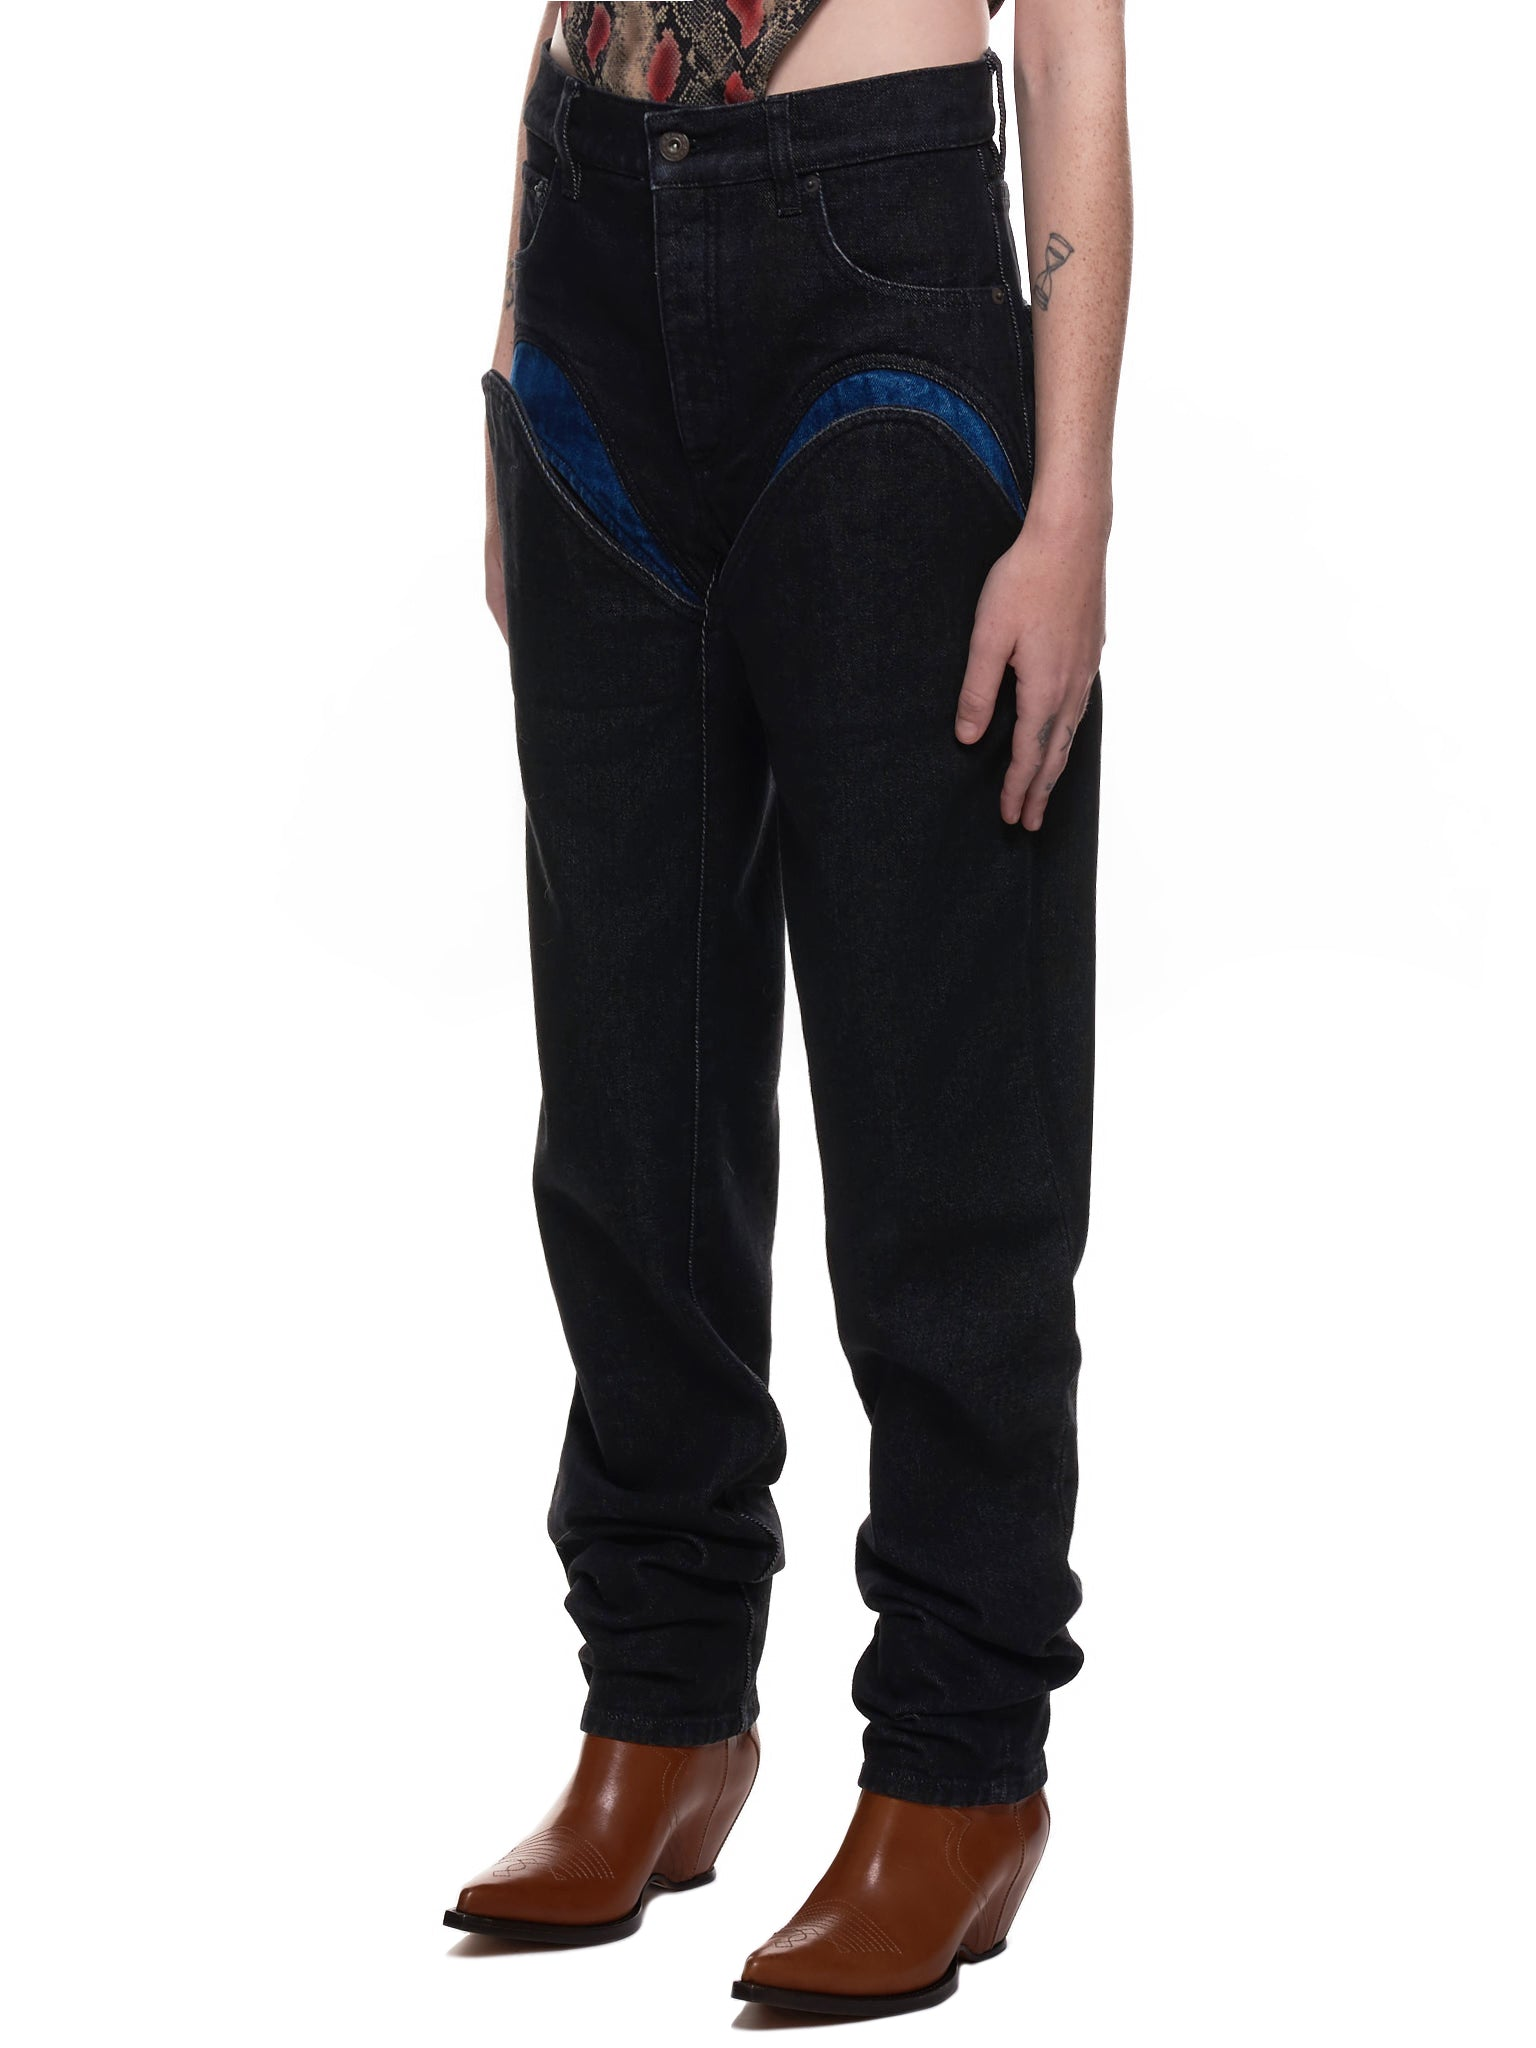 Double-U Cut Out Denim Trousers (WJEAN30-BLACK-NAVY)